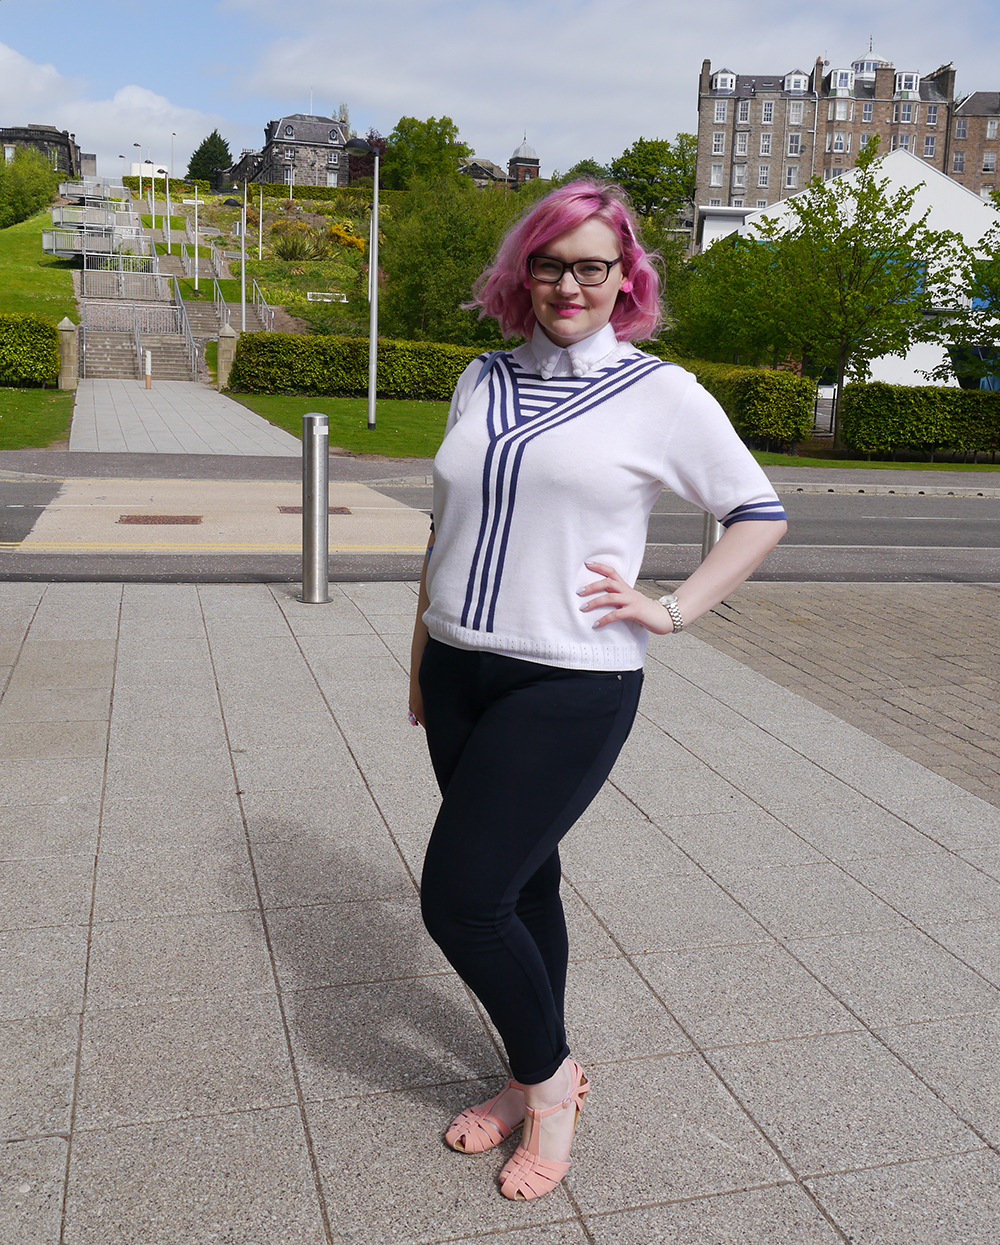 DIY pompom collar, how to make a pom pom collar, vintage sailor top, Dundee blog photoshoot location, Dundee Blogger, pink hair fashion blogger